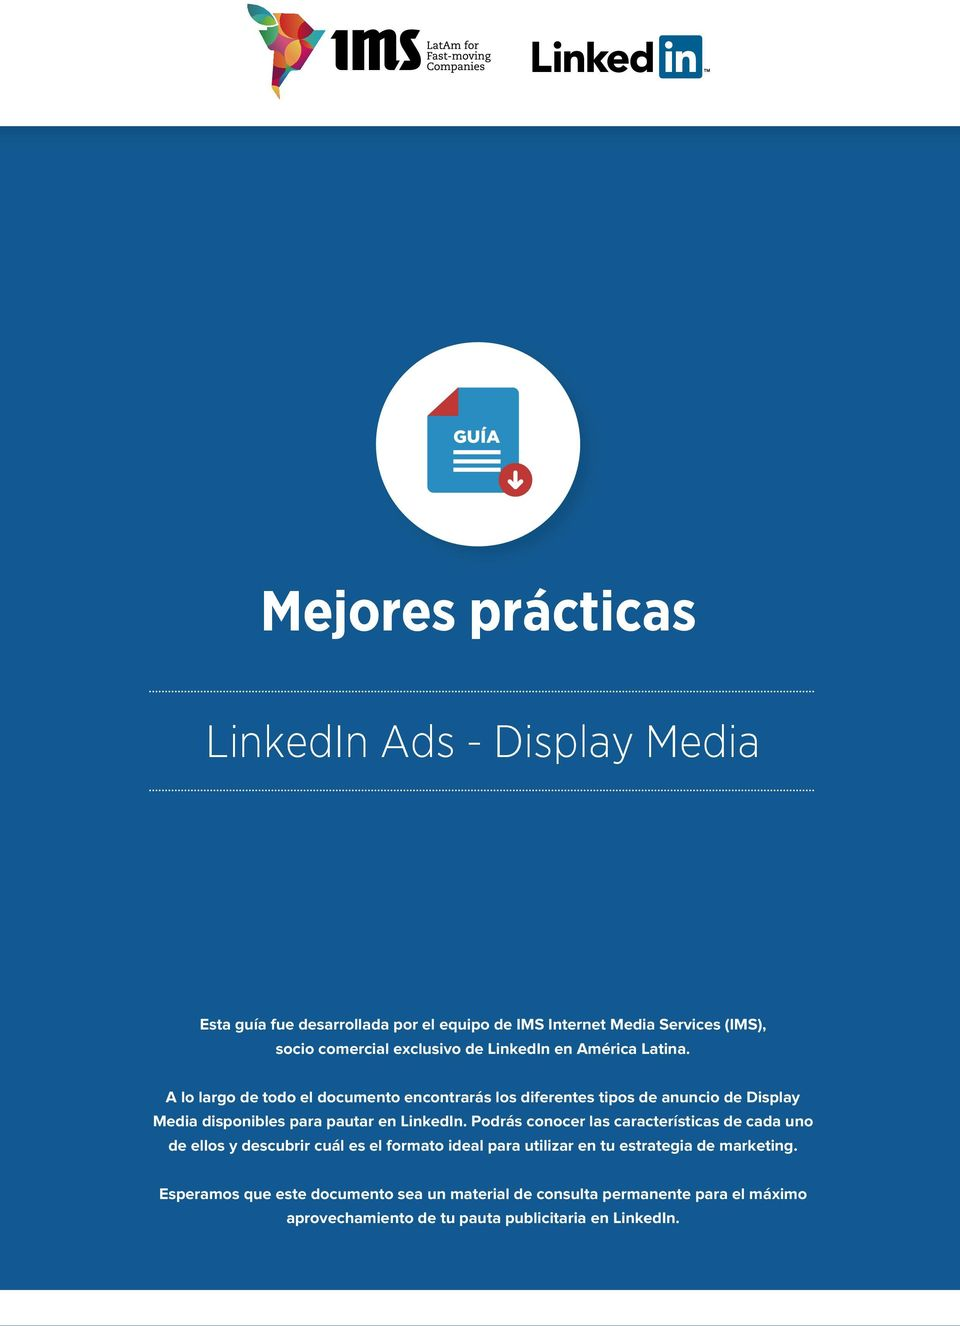 lo largo de todo el documento encontrarás los diferentes tipos de anuncio de Display Media disponibles para pautar en LinkedIn.